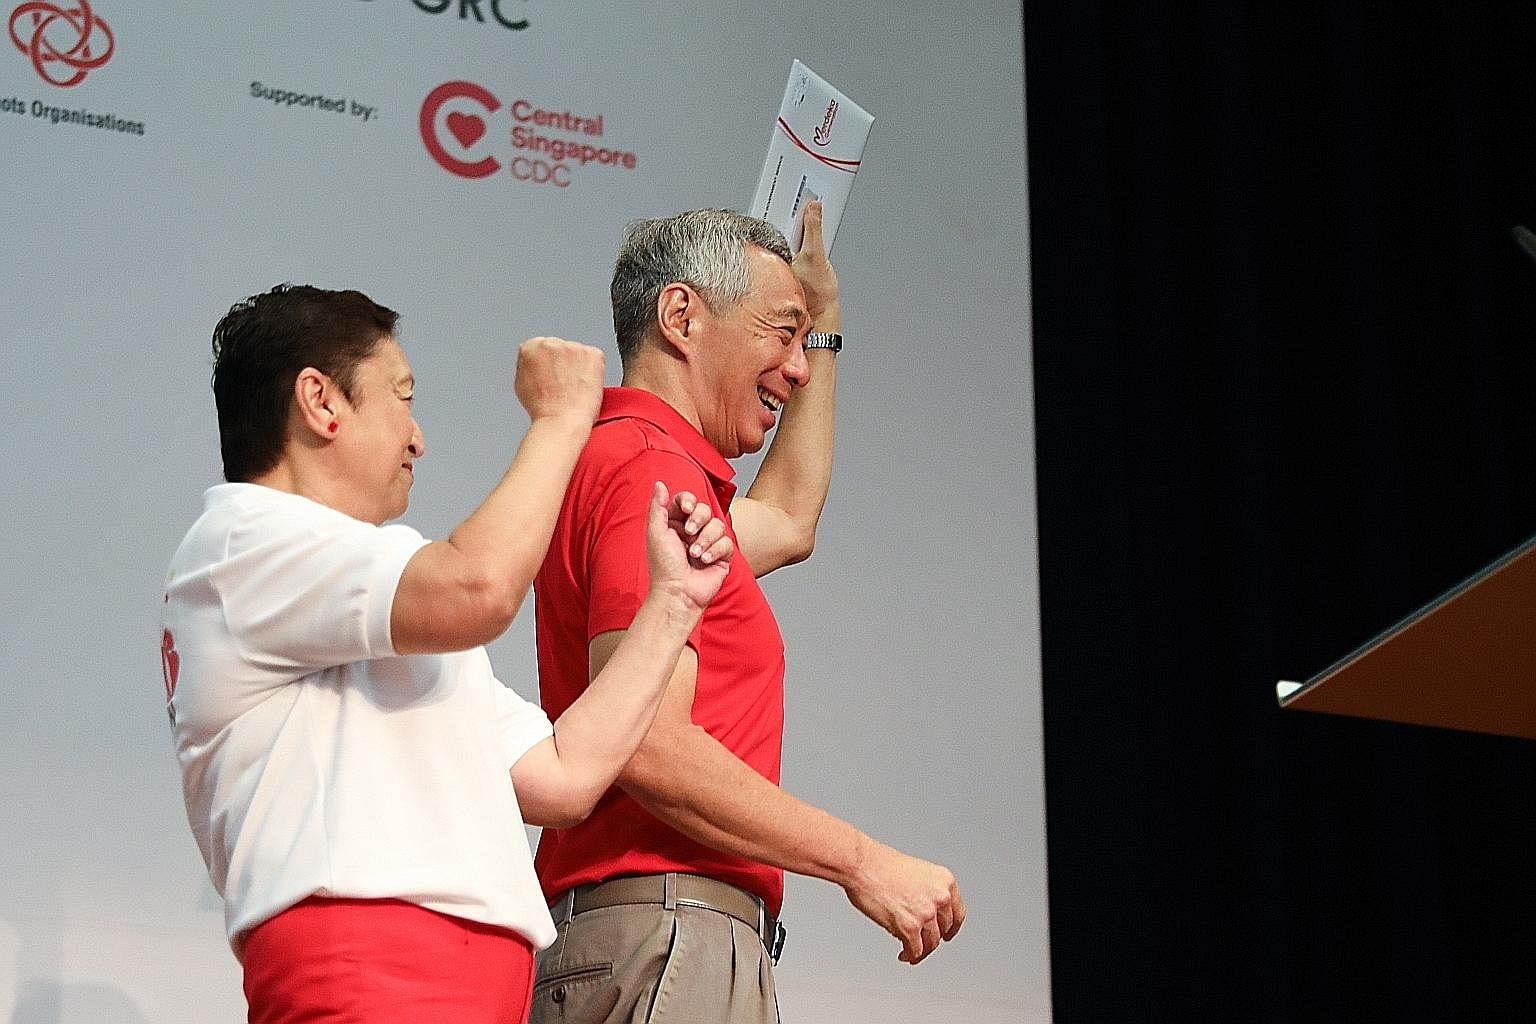 About 8,300 Singaporeans received their Merdeka Generation Package welcome folders yesterday, including Prime Minister Lee Hsien Loong, who was born in 1952. PM Lee received his pack from Madam Noelene De Foe, 66, chairman of the Teck Ghee Community